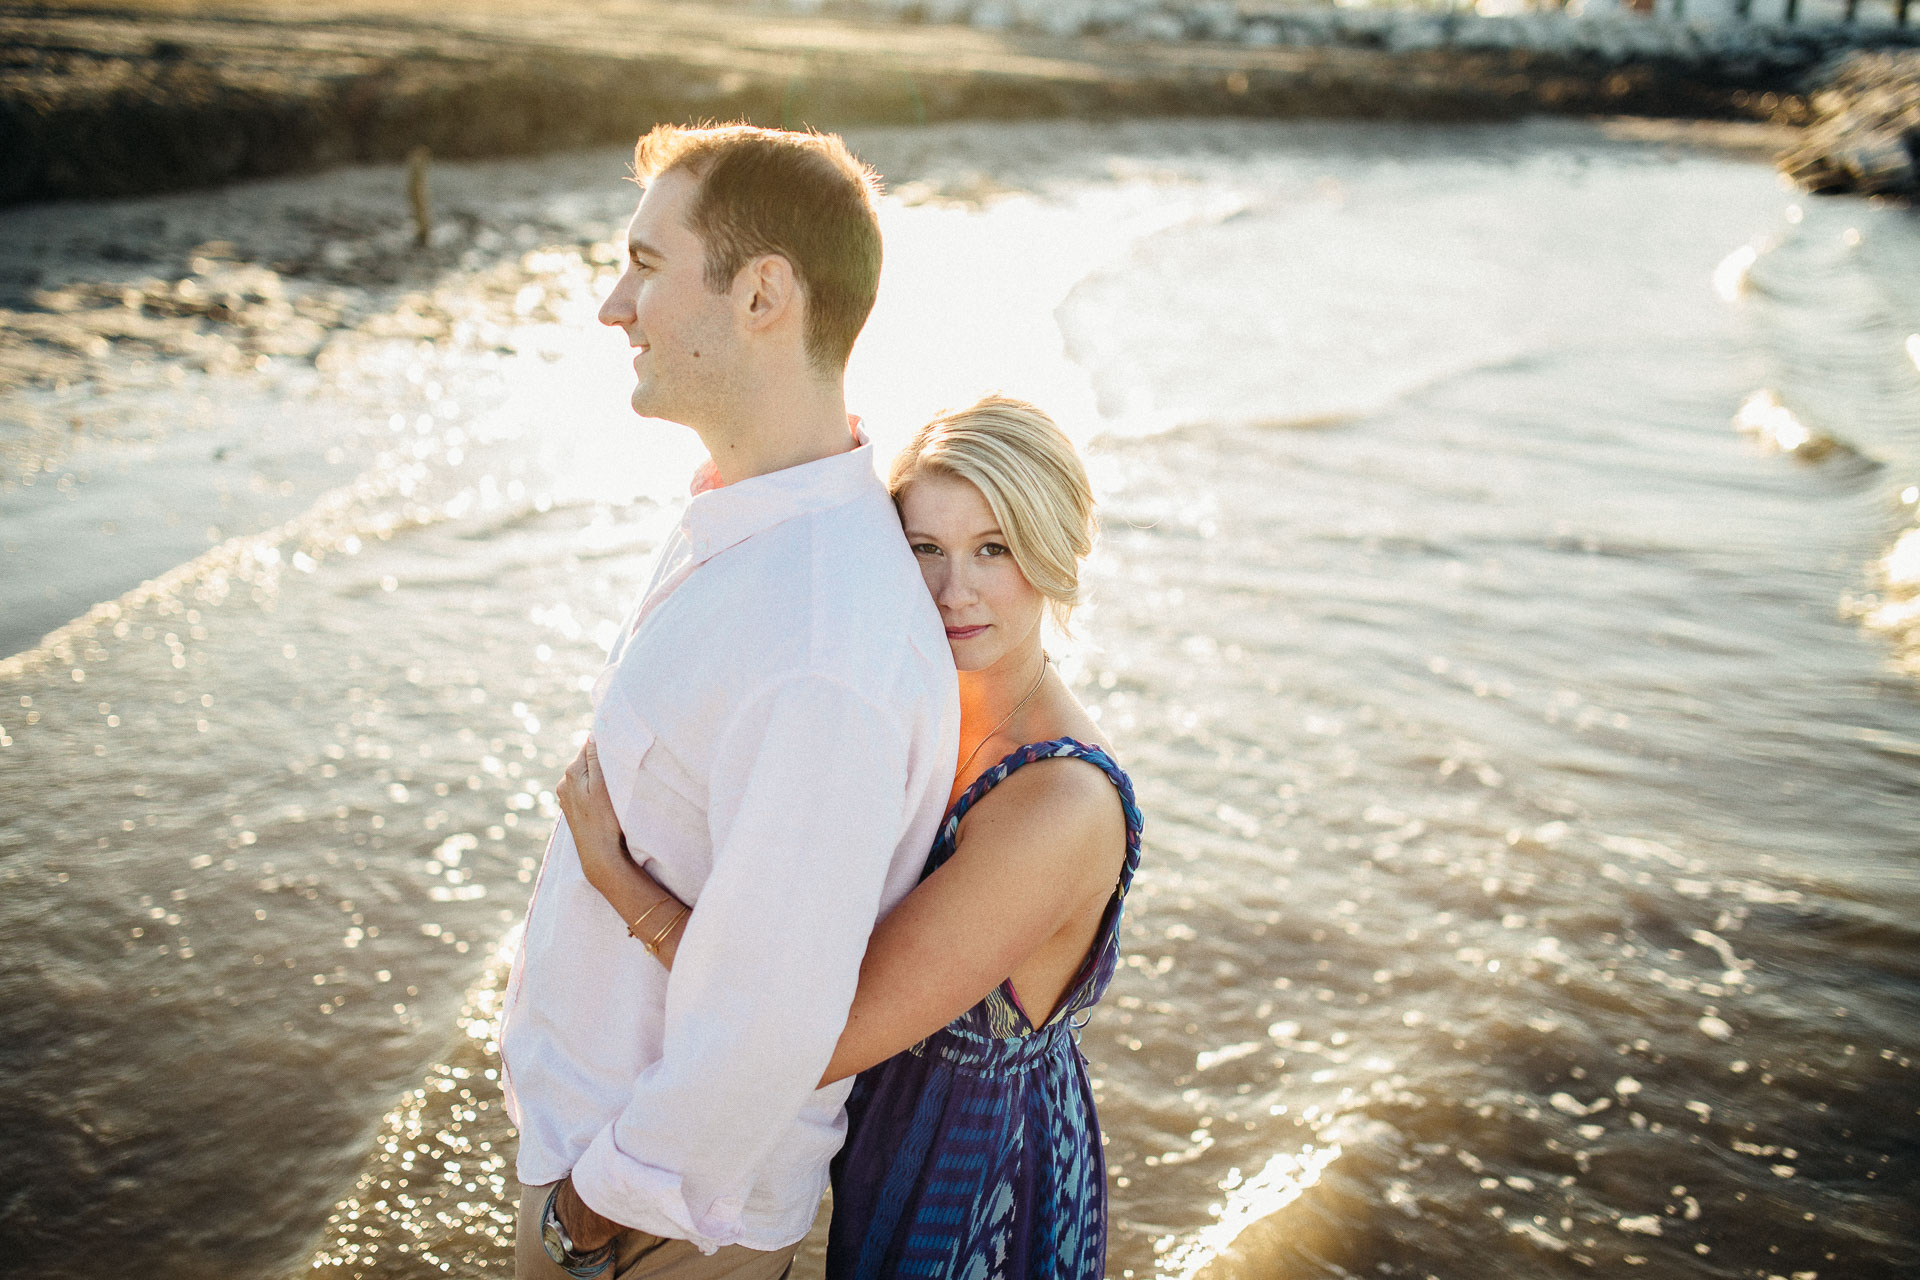 Kristin_Sasa_Engagement_Herrington_Maryland_JeanLaurentGaudy_053